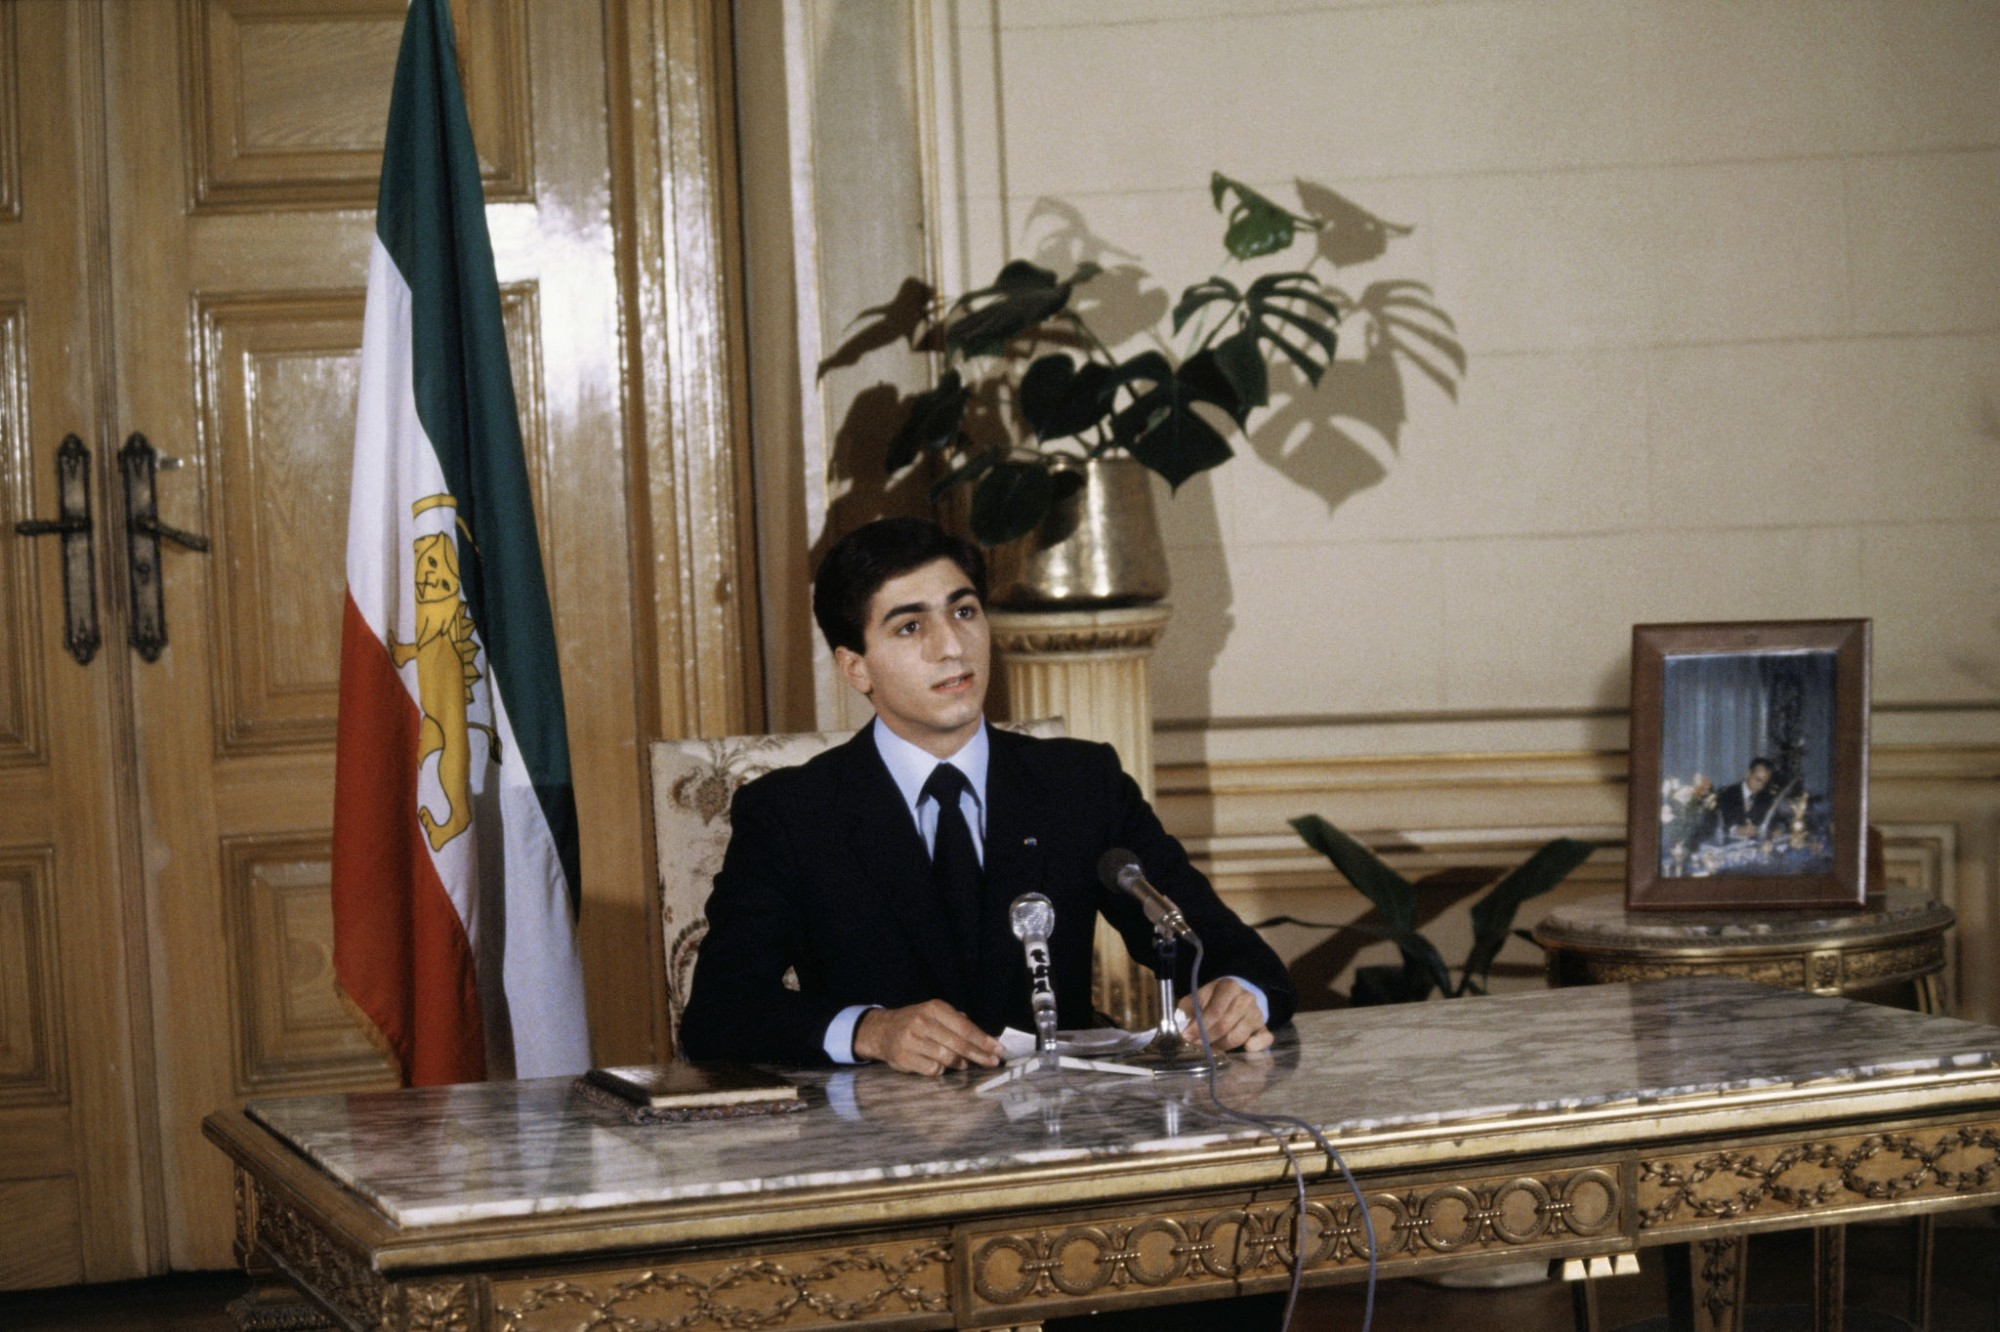 1980 Reza Pahlavi proclaiming himself the Shah of Iran. Taken in the Kubbeh Palace, Cairo